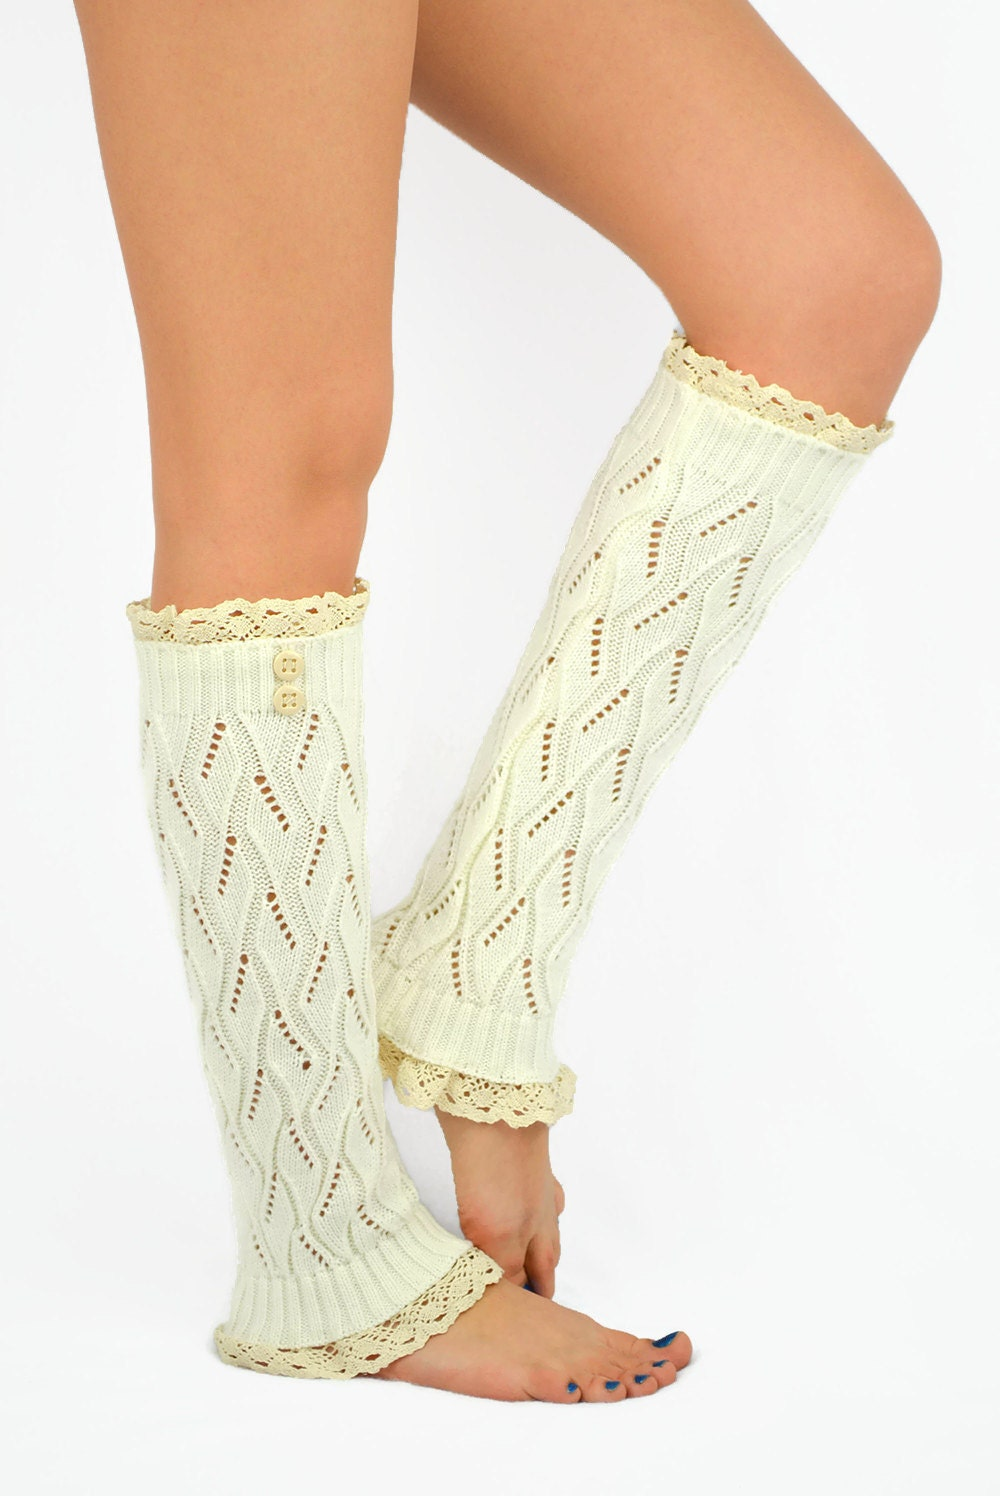 IVORY Knitted Boot Socks Lace Leg Warmers Womenu0026#39;s By JuicyBows